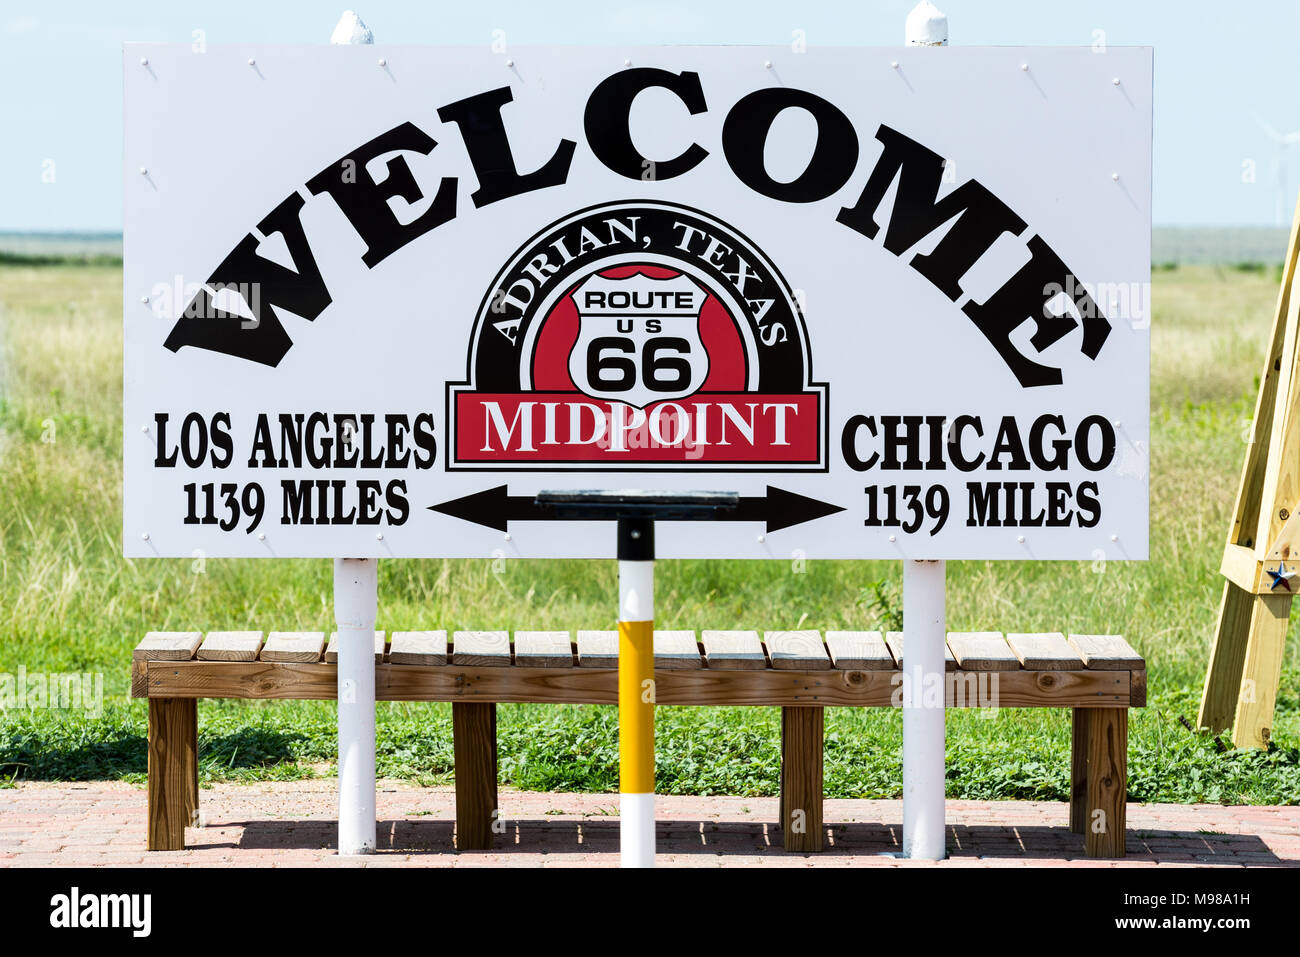 Midpoint on Route 66 in Adrian, Texas. Halfway between Los Angeles and Chicago. - Stock Image